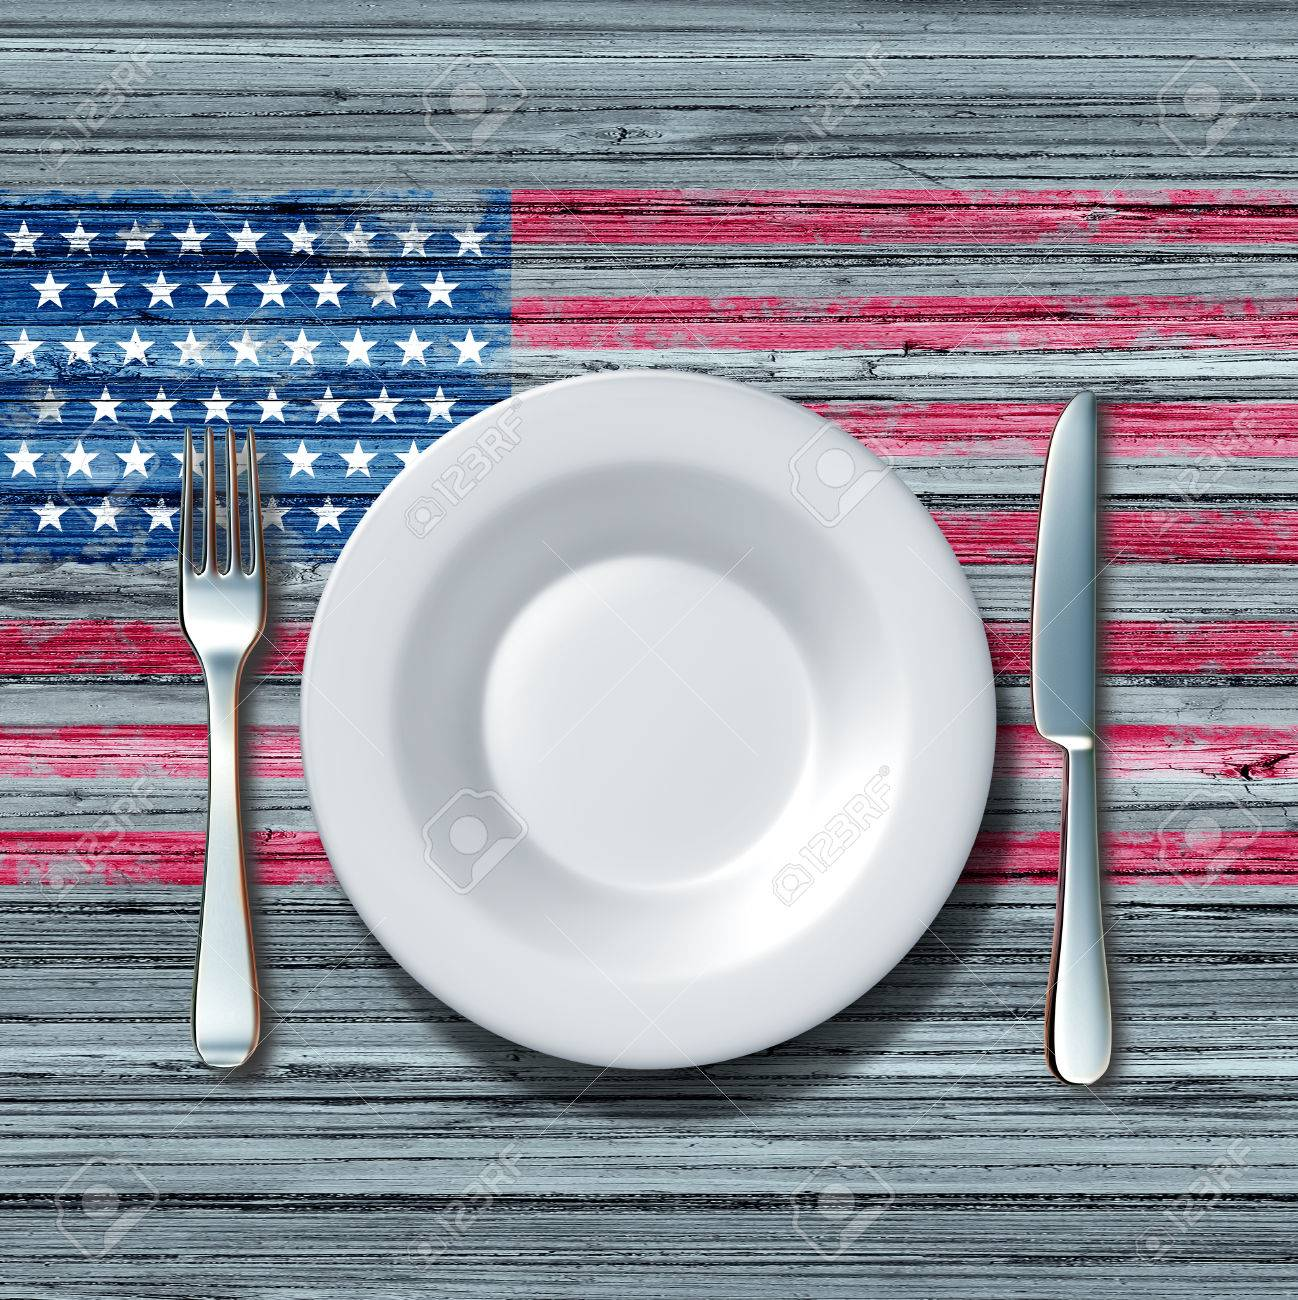 American cuisine food concept as a place setting with knife and fork on an old rustick  sc 1 st  123RF.com & American Cuisine Food Concept As A Place Setting With Knife And ...